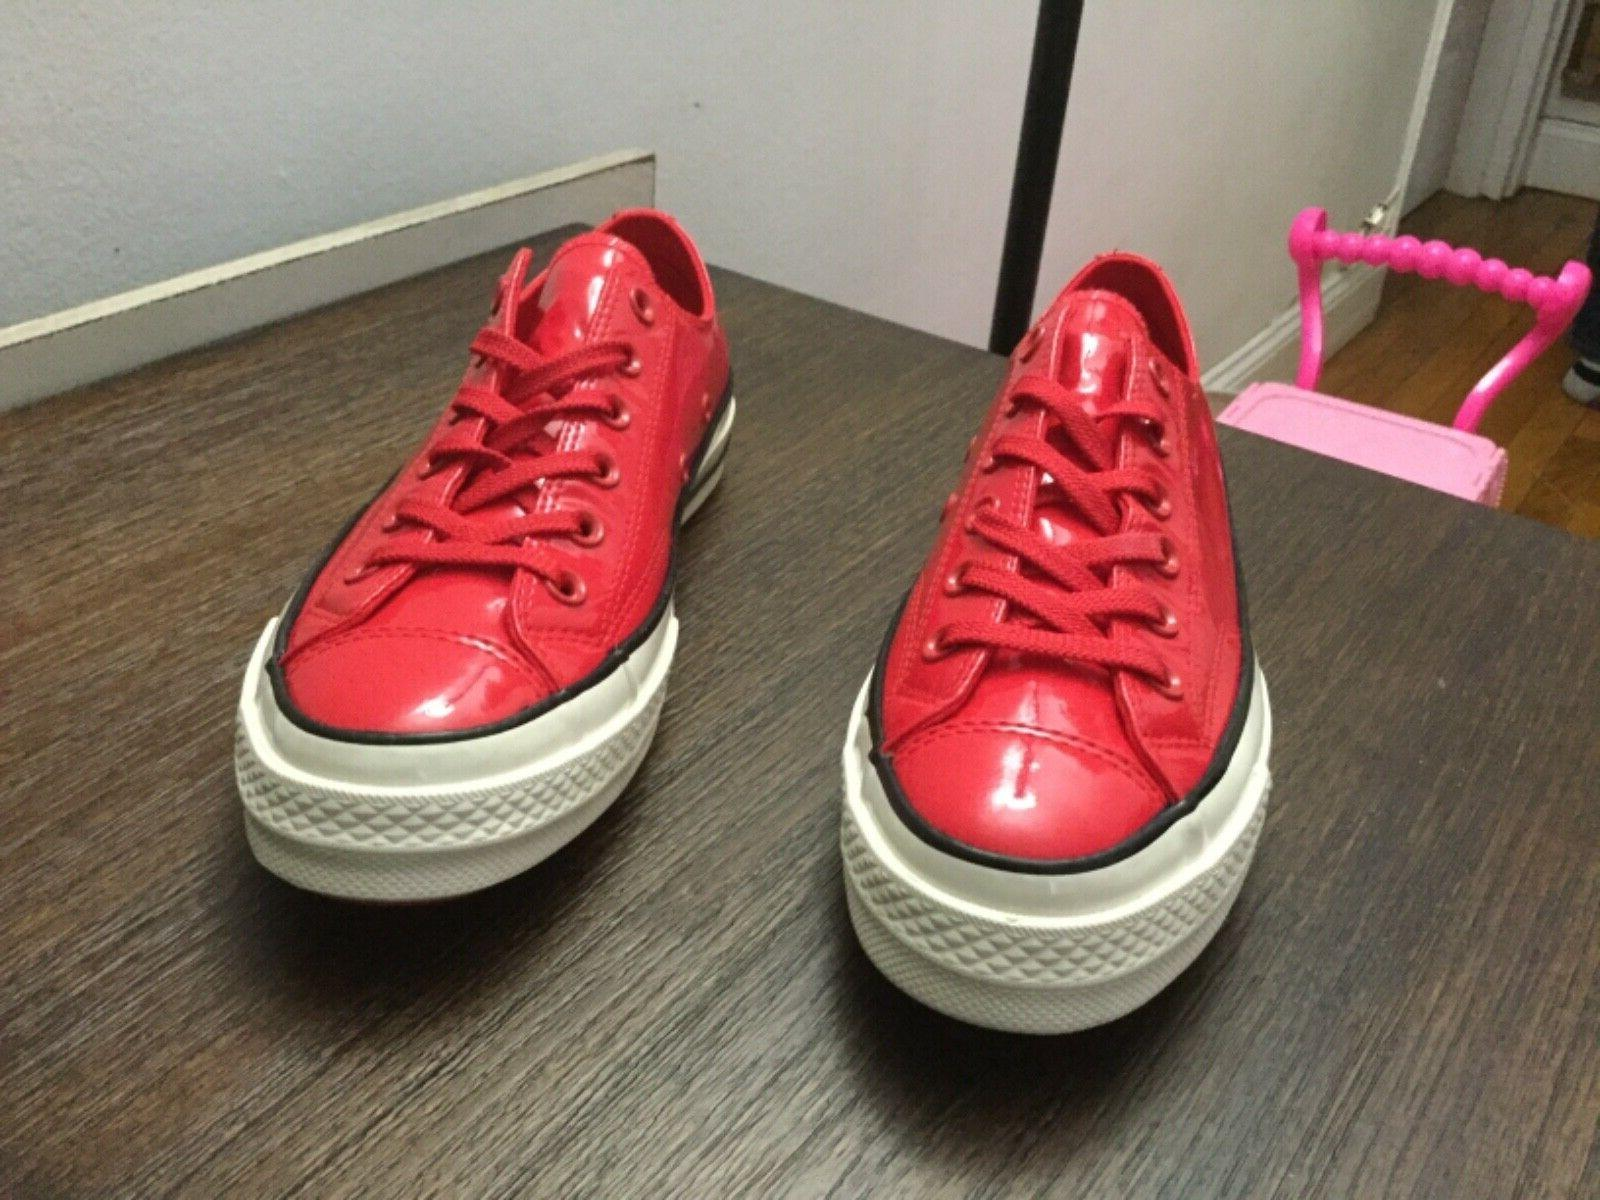 Converse Taylor All Star Leather Cherry Red 6-8.5